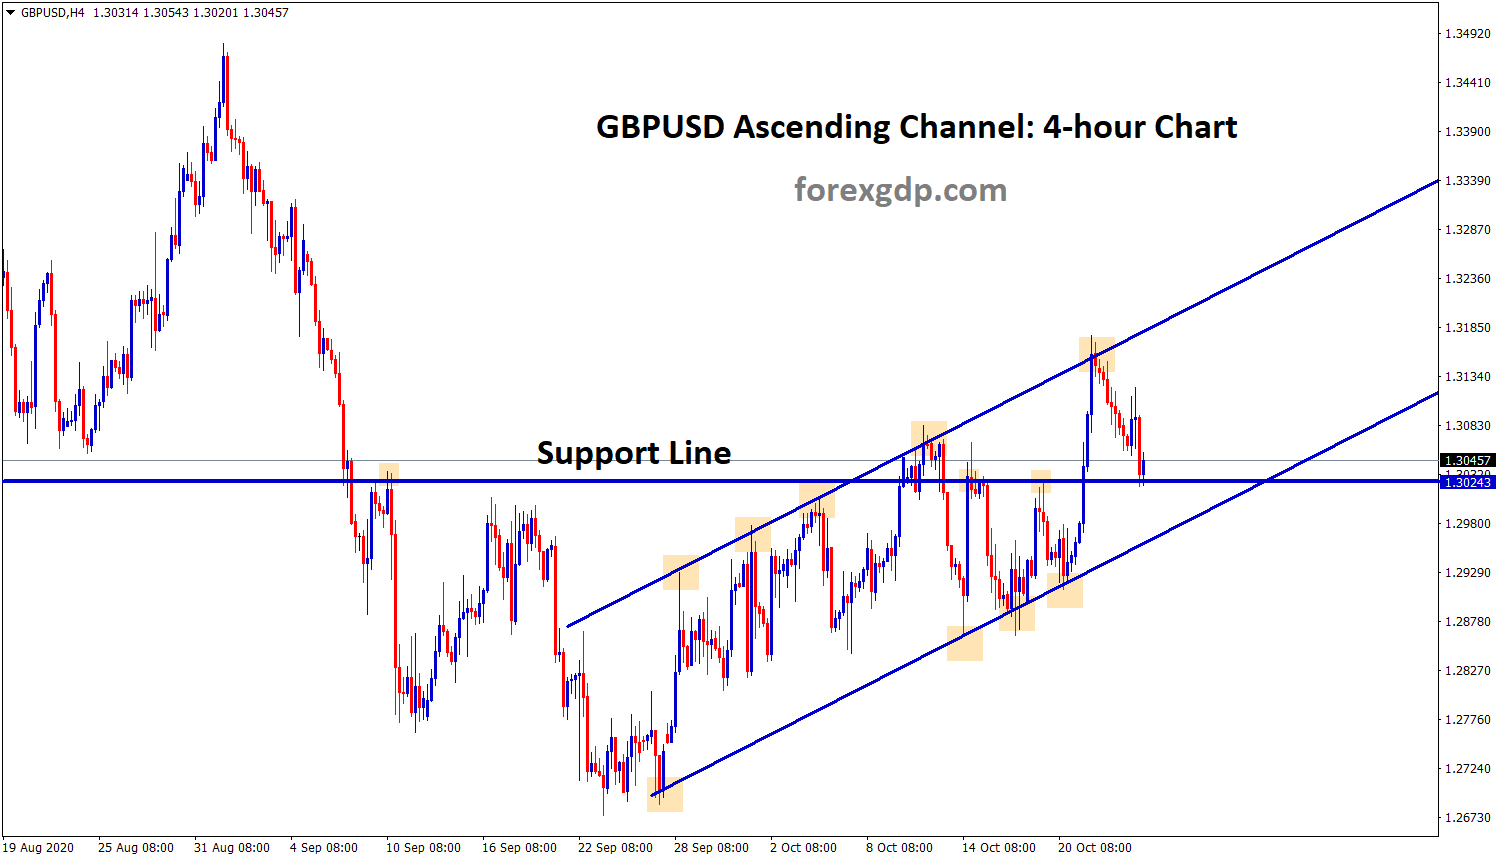 gbpusd moving in an ascending channel